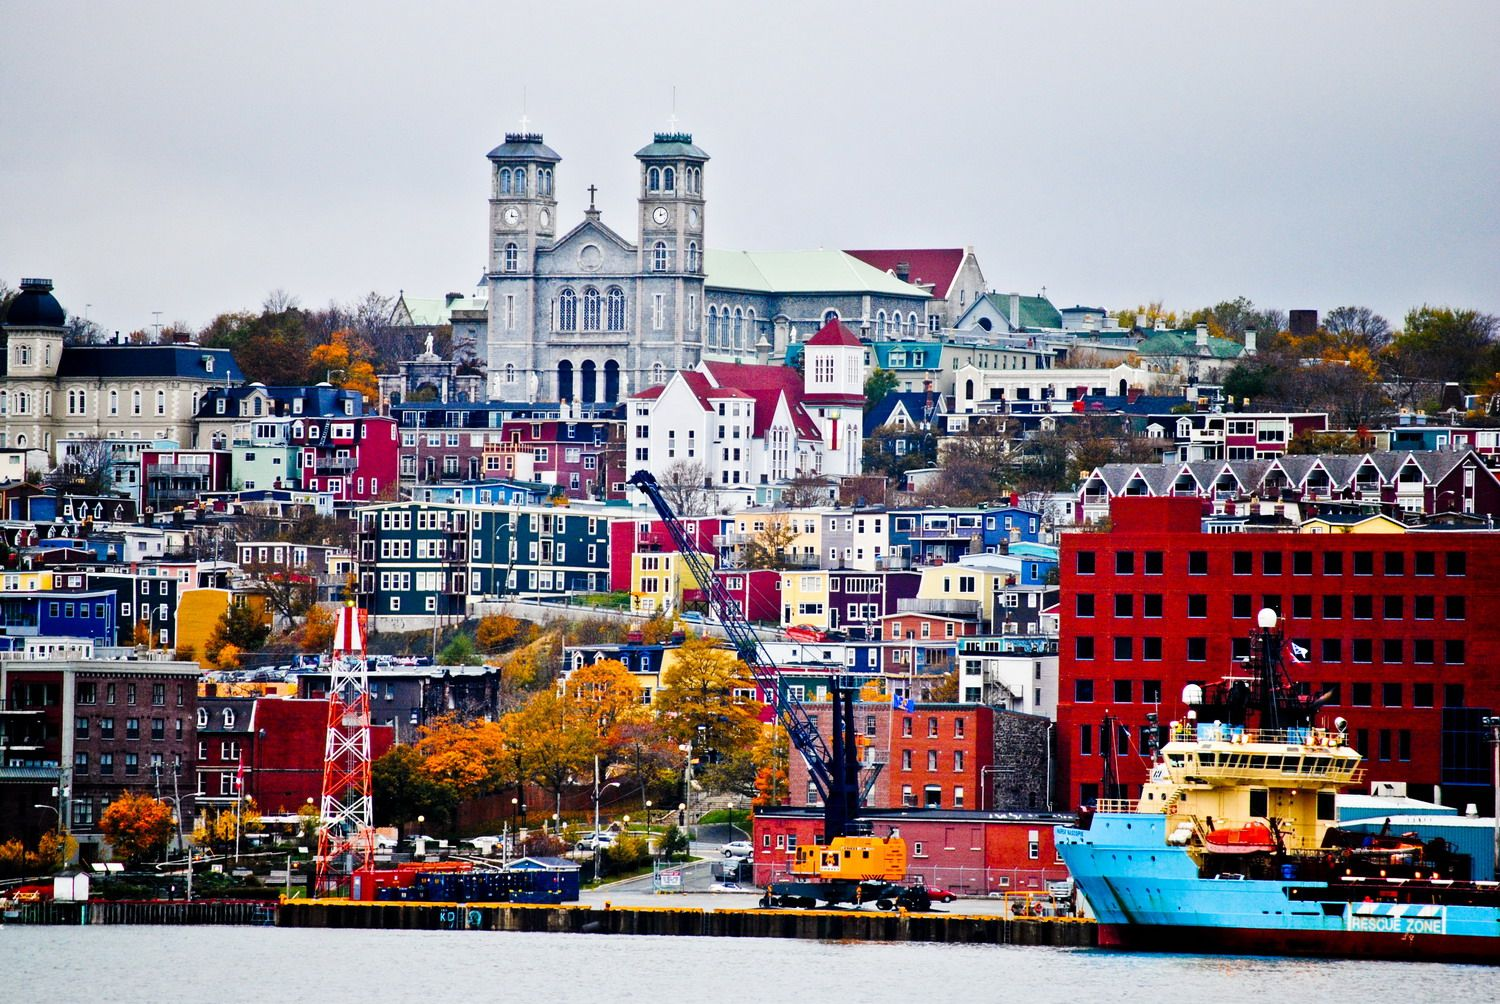 Tweed in Development of New Cultivation Facility and Retail Stores in Newfoundland & Labrador